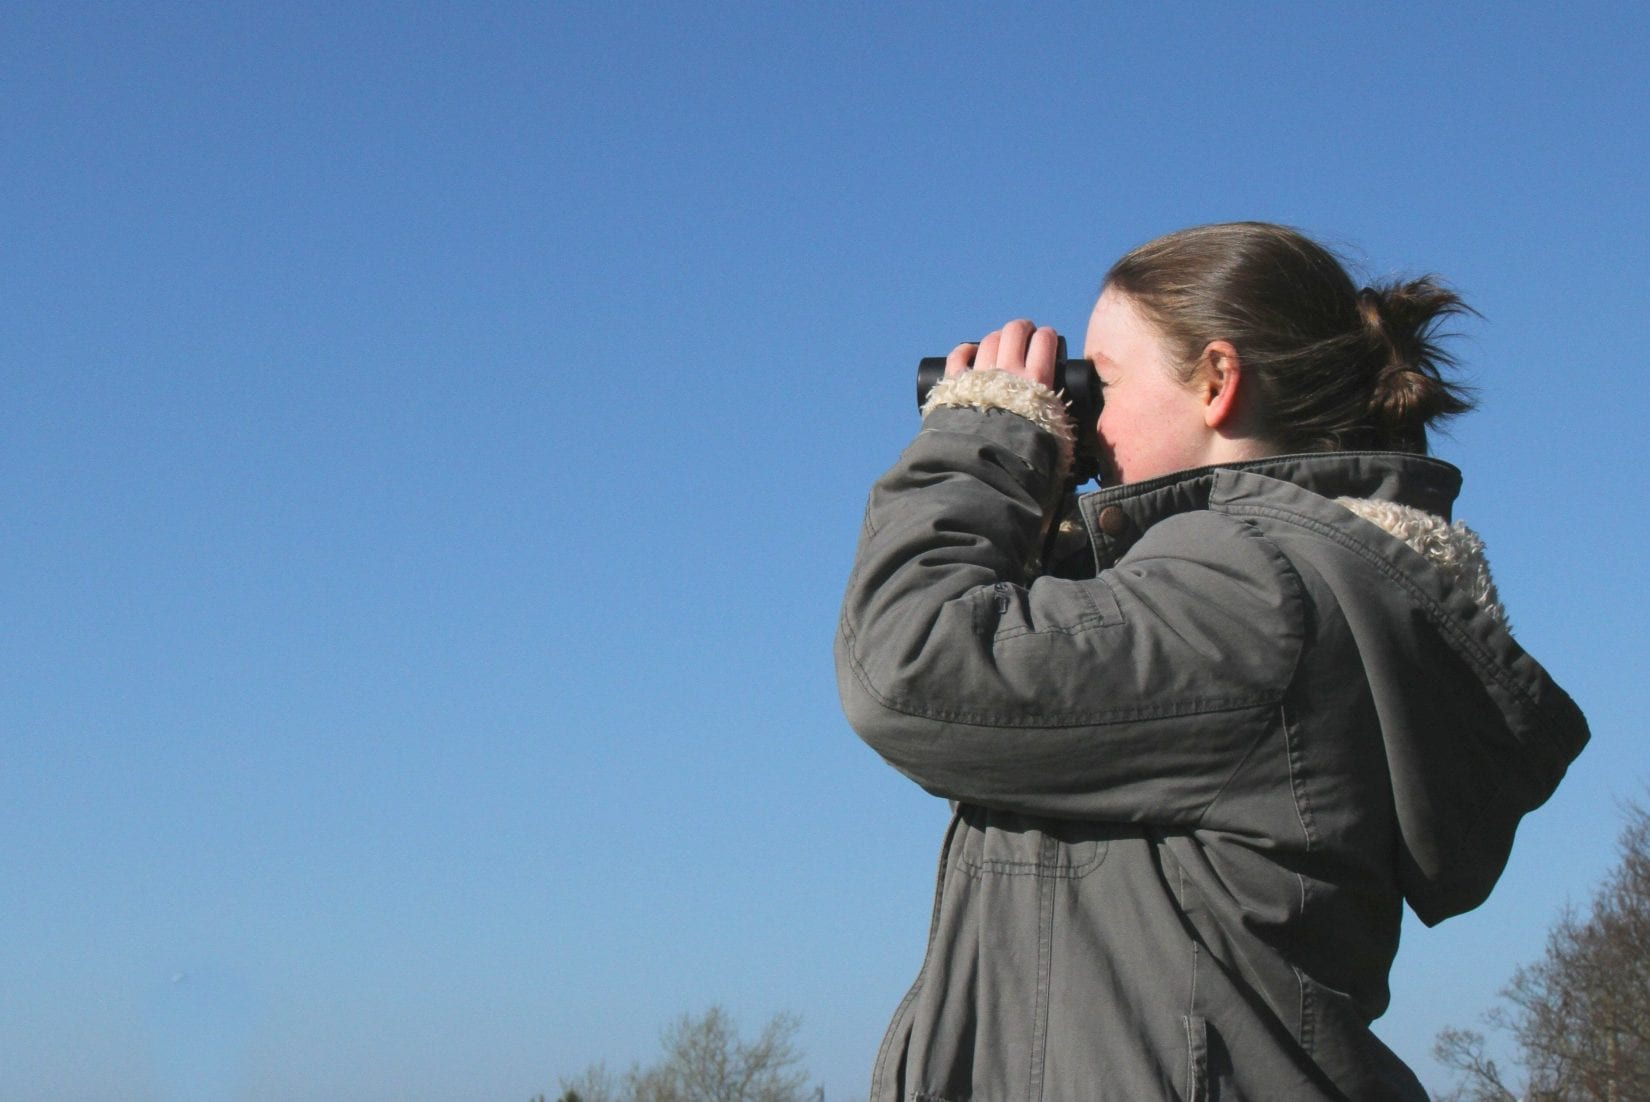 Girl-looking-through-binoculars